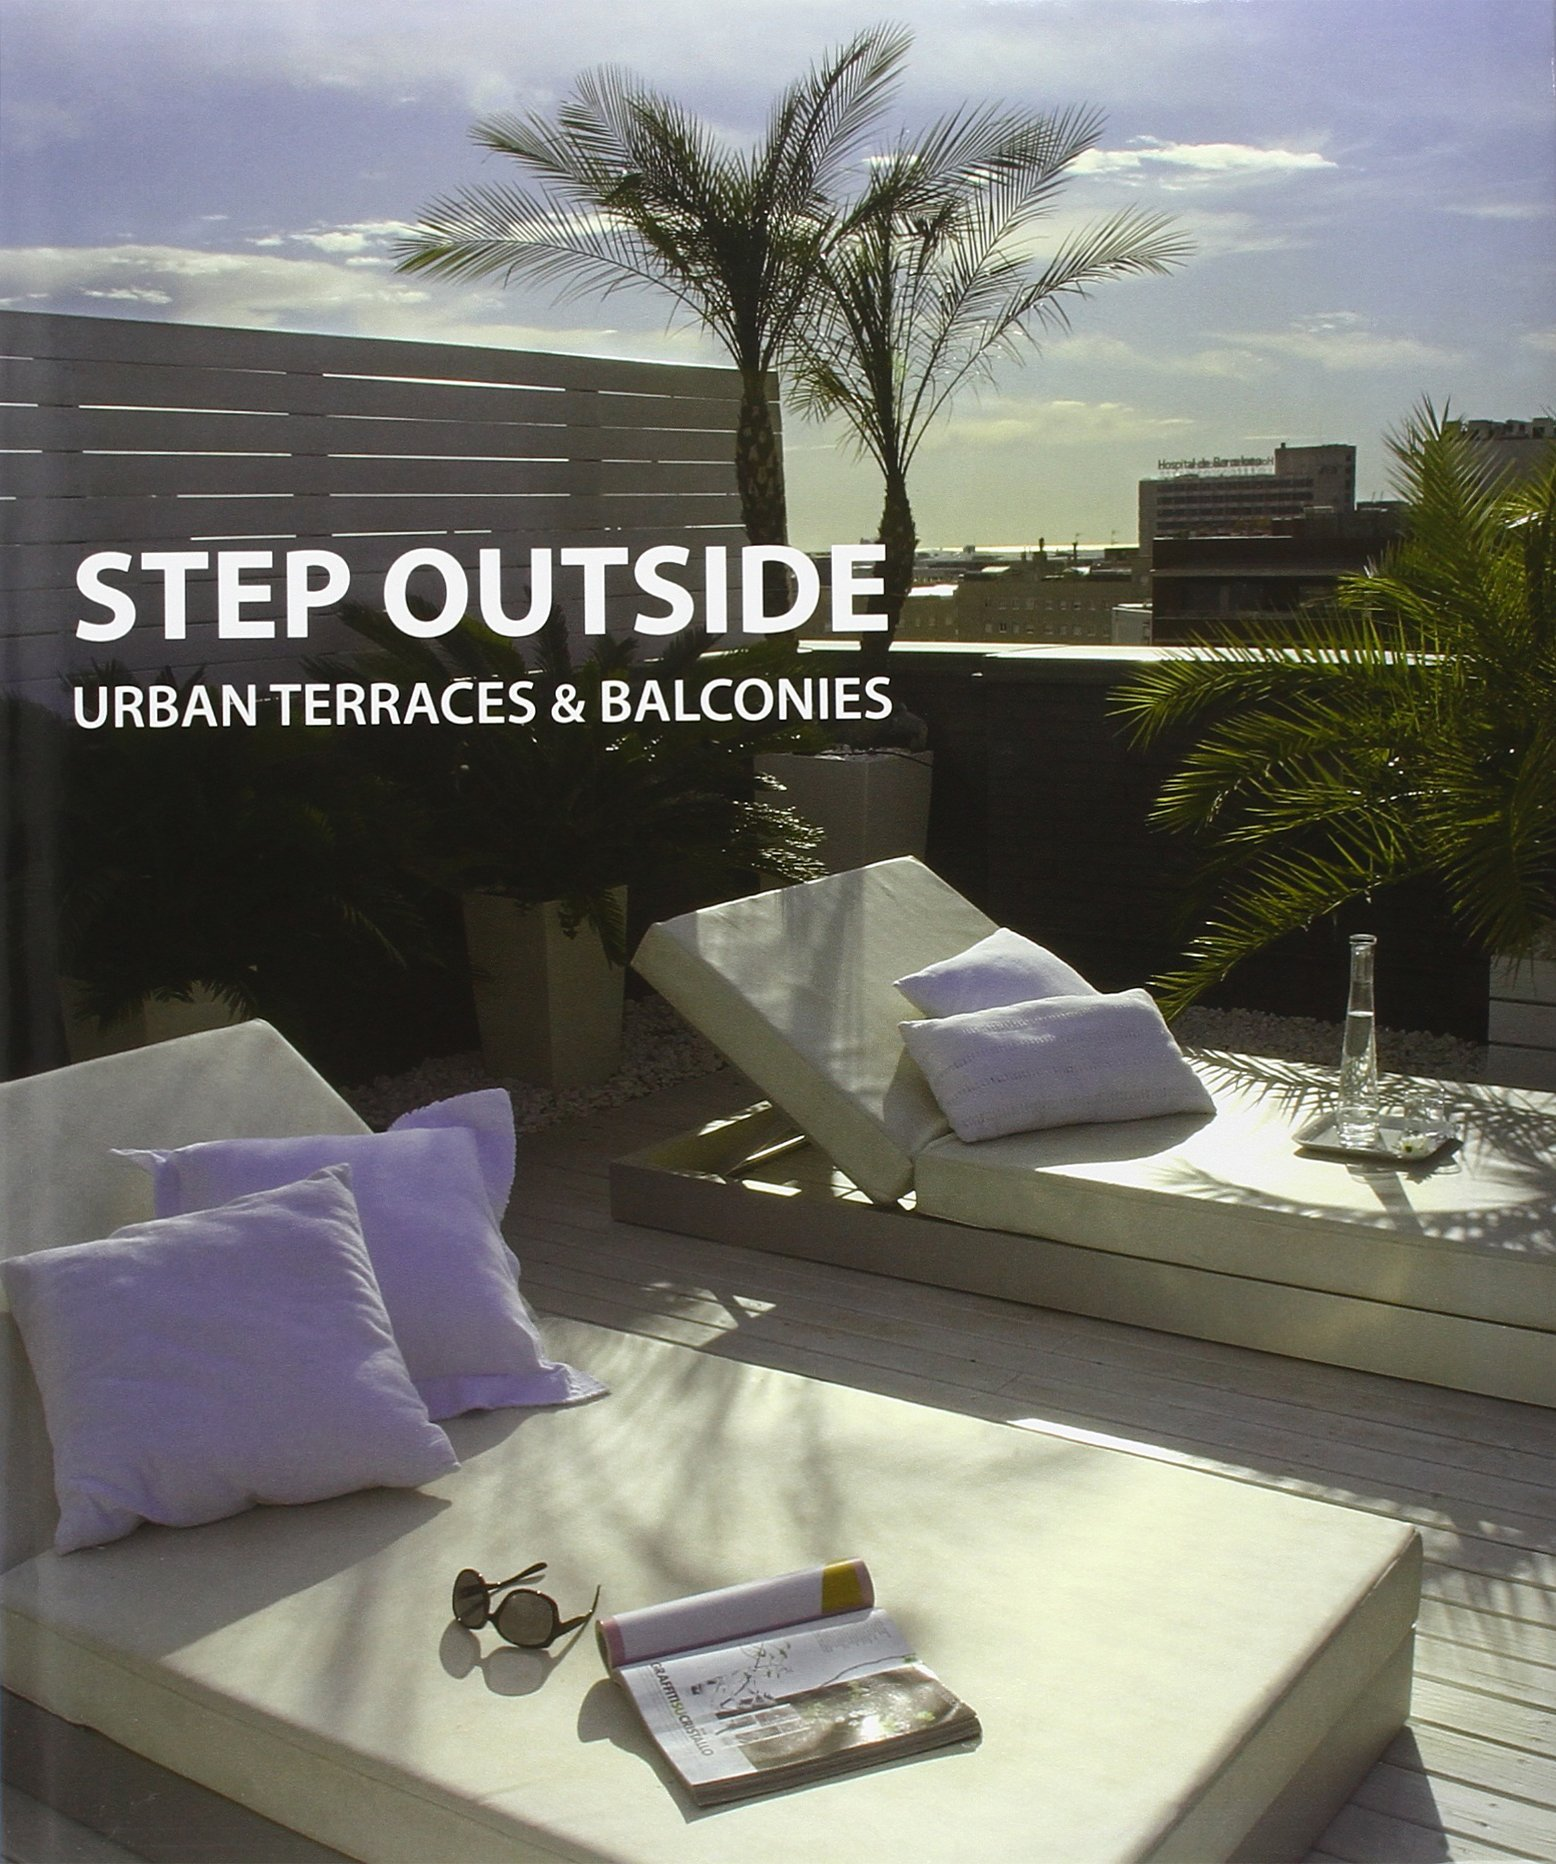 Step Outside: Urban Terraces and Balconies